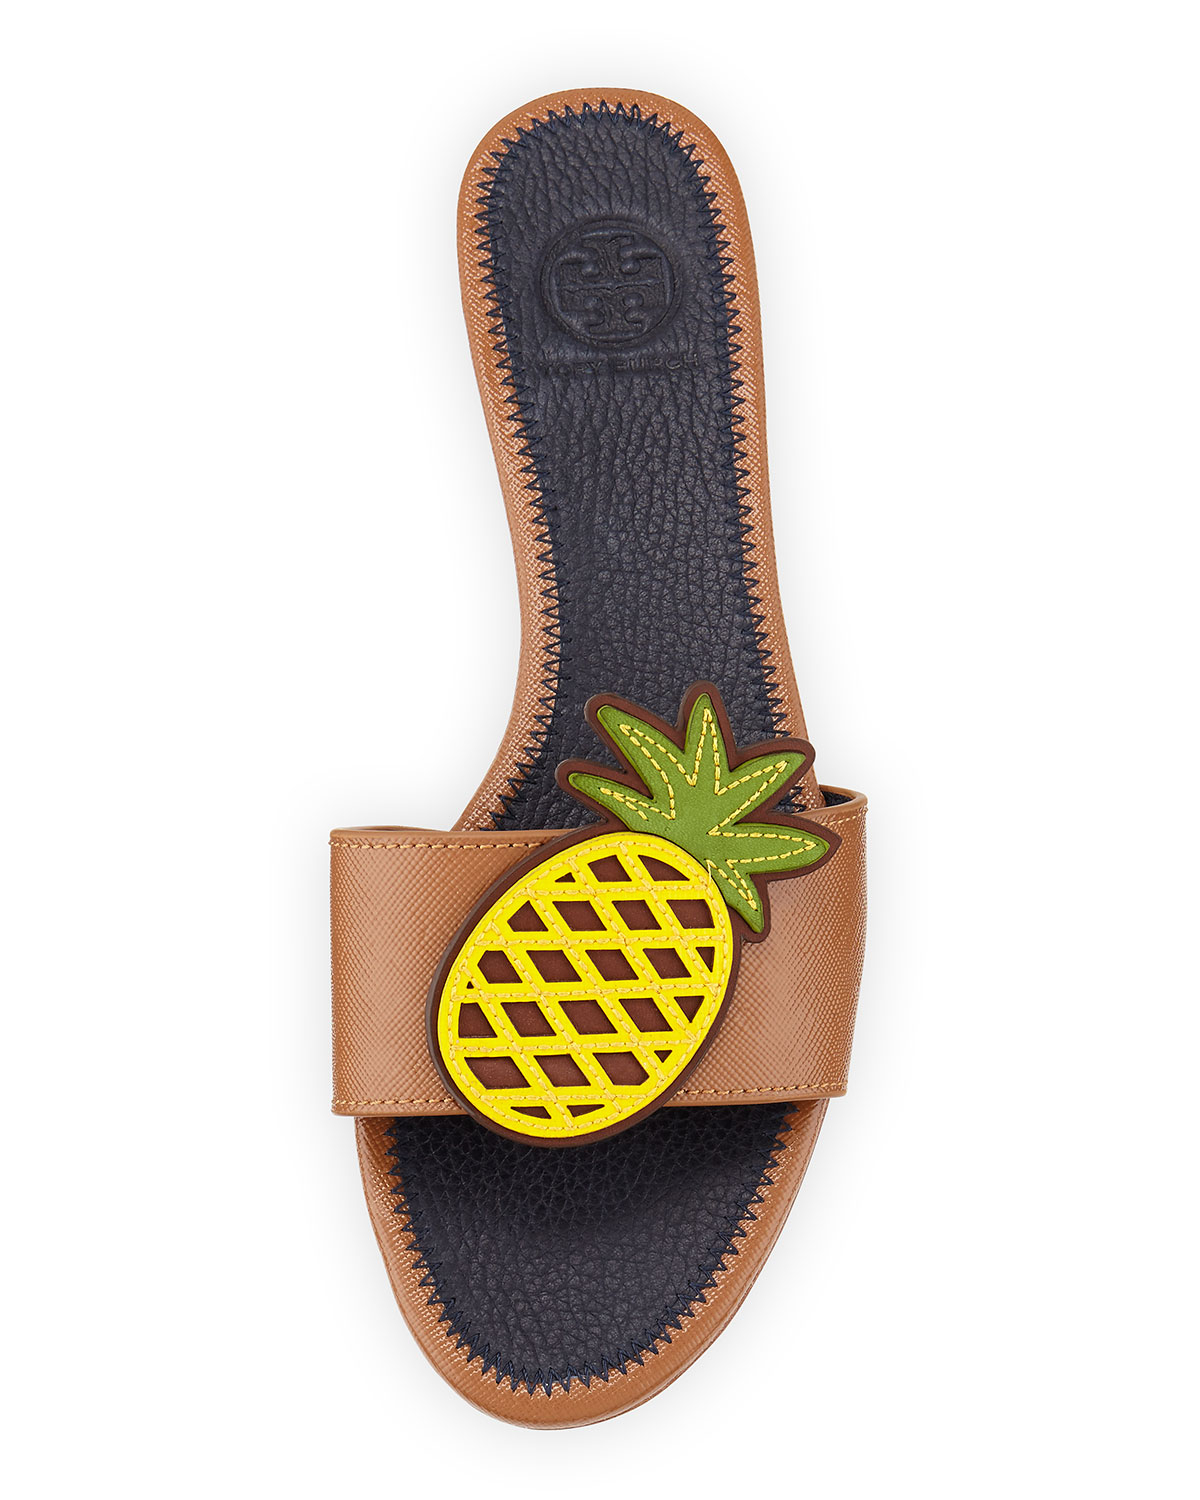 Tory Burch Pineapple Leather Flat Sandal In Brown Lyst